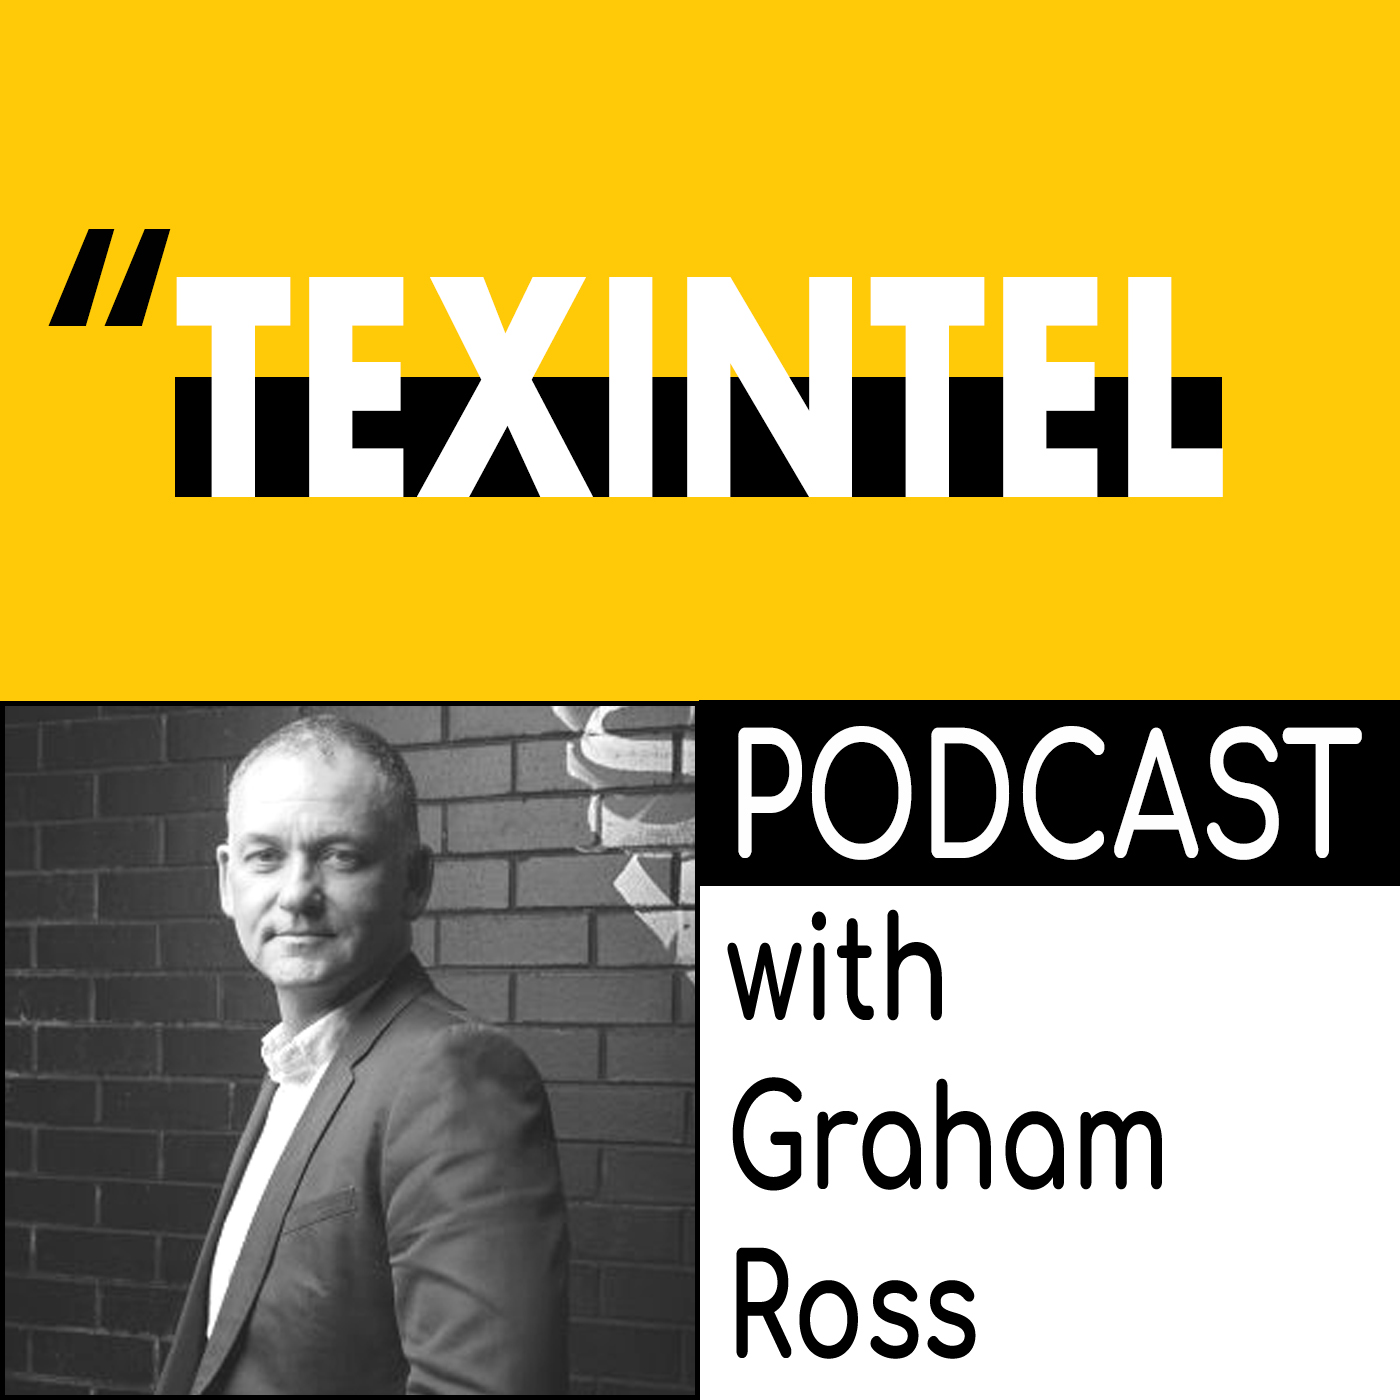 TEXINTEL TALKS - EPISODE 016 - GRAHAM ROSS OF BLOCKTEXX AND KUSAGA TALKING ECO SPORTSWEAR AND RECYCLING WASTE